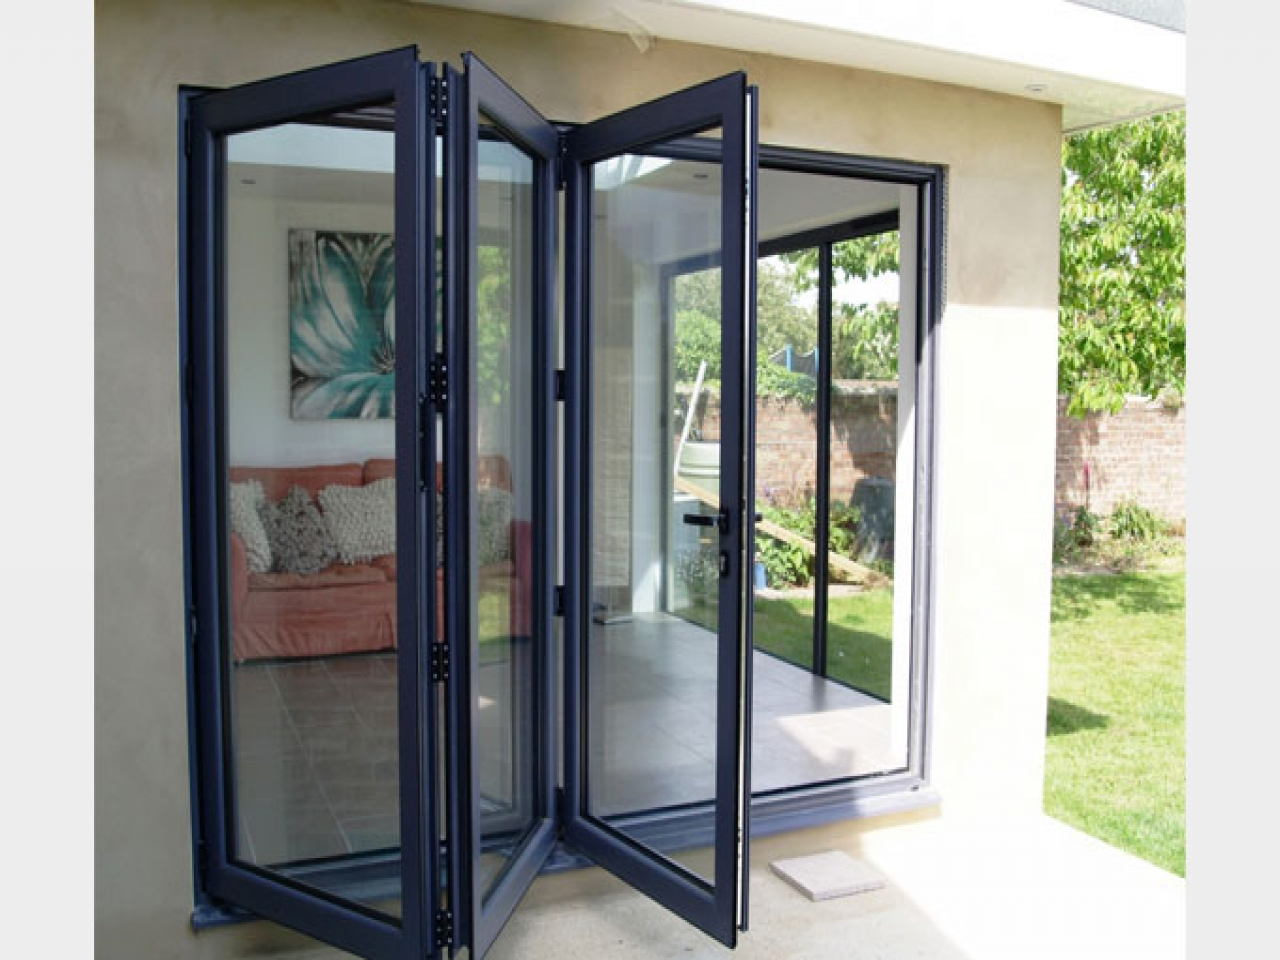 Residential windows doors south coast windows doors for Sliding door with glass